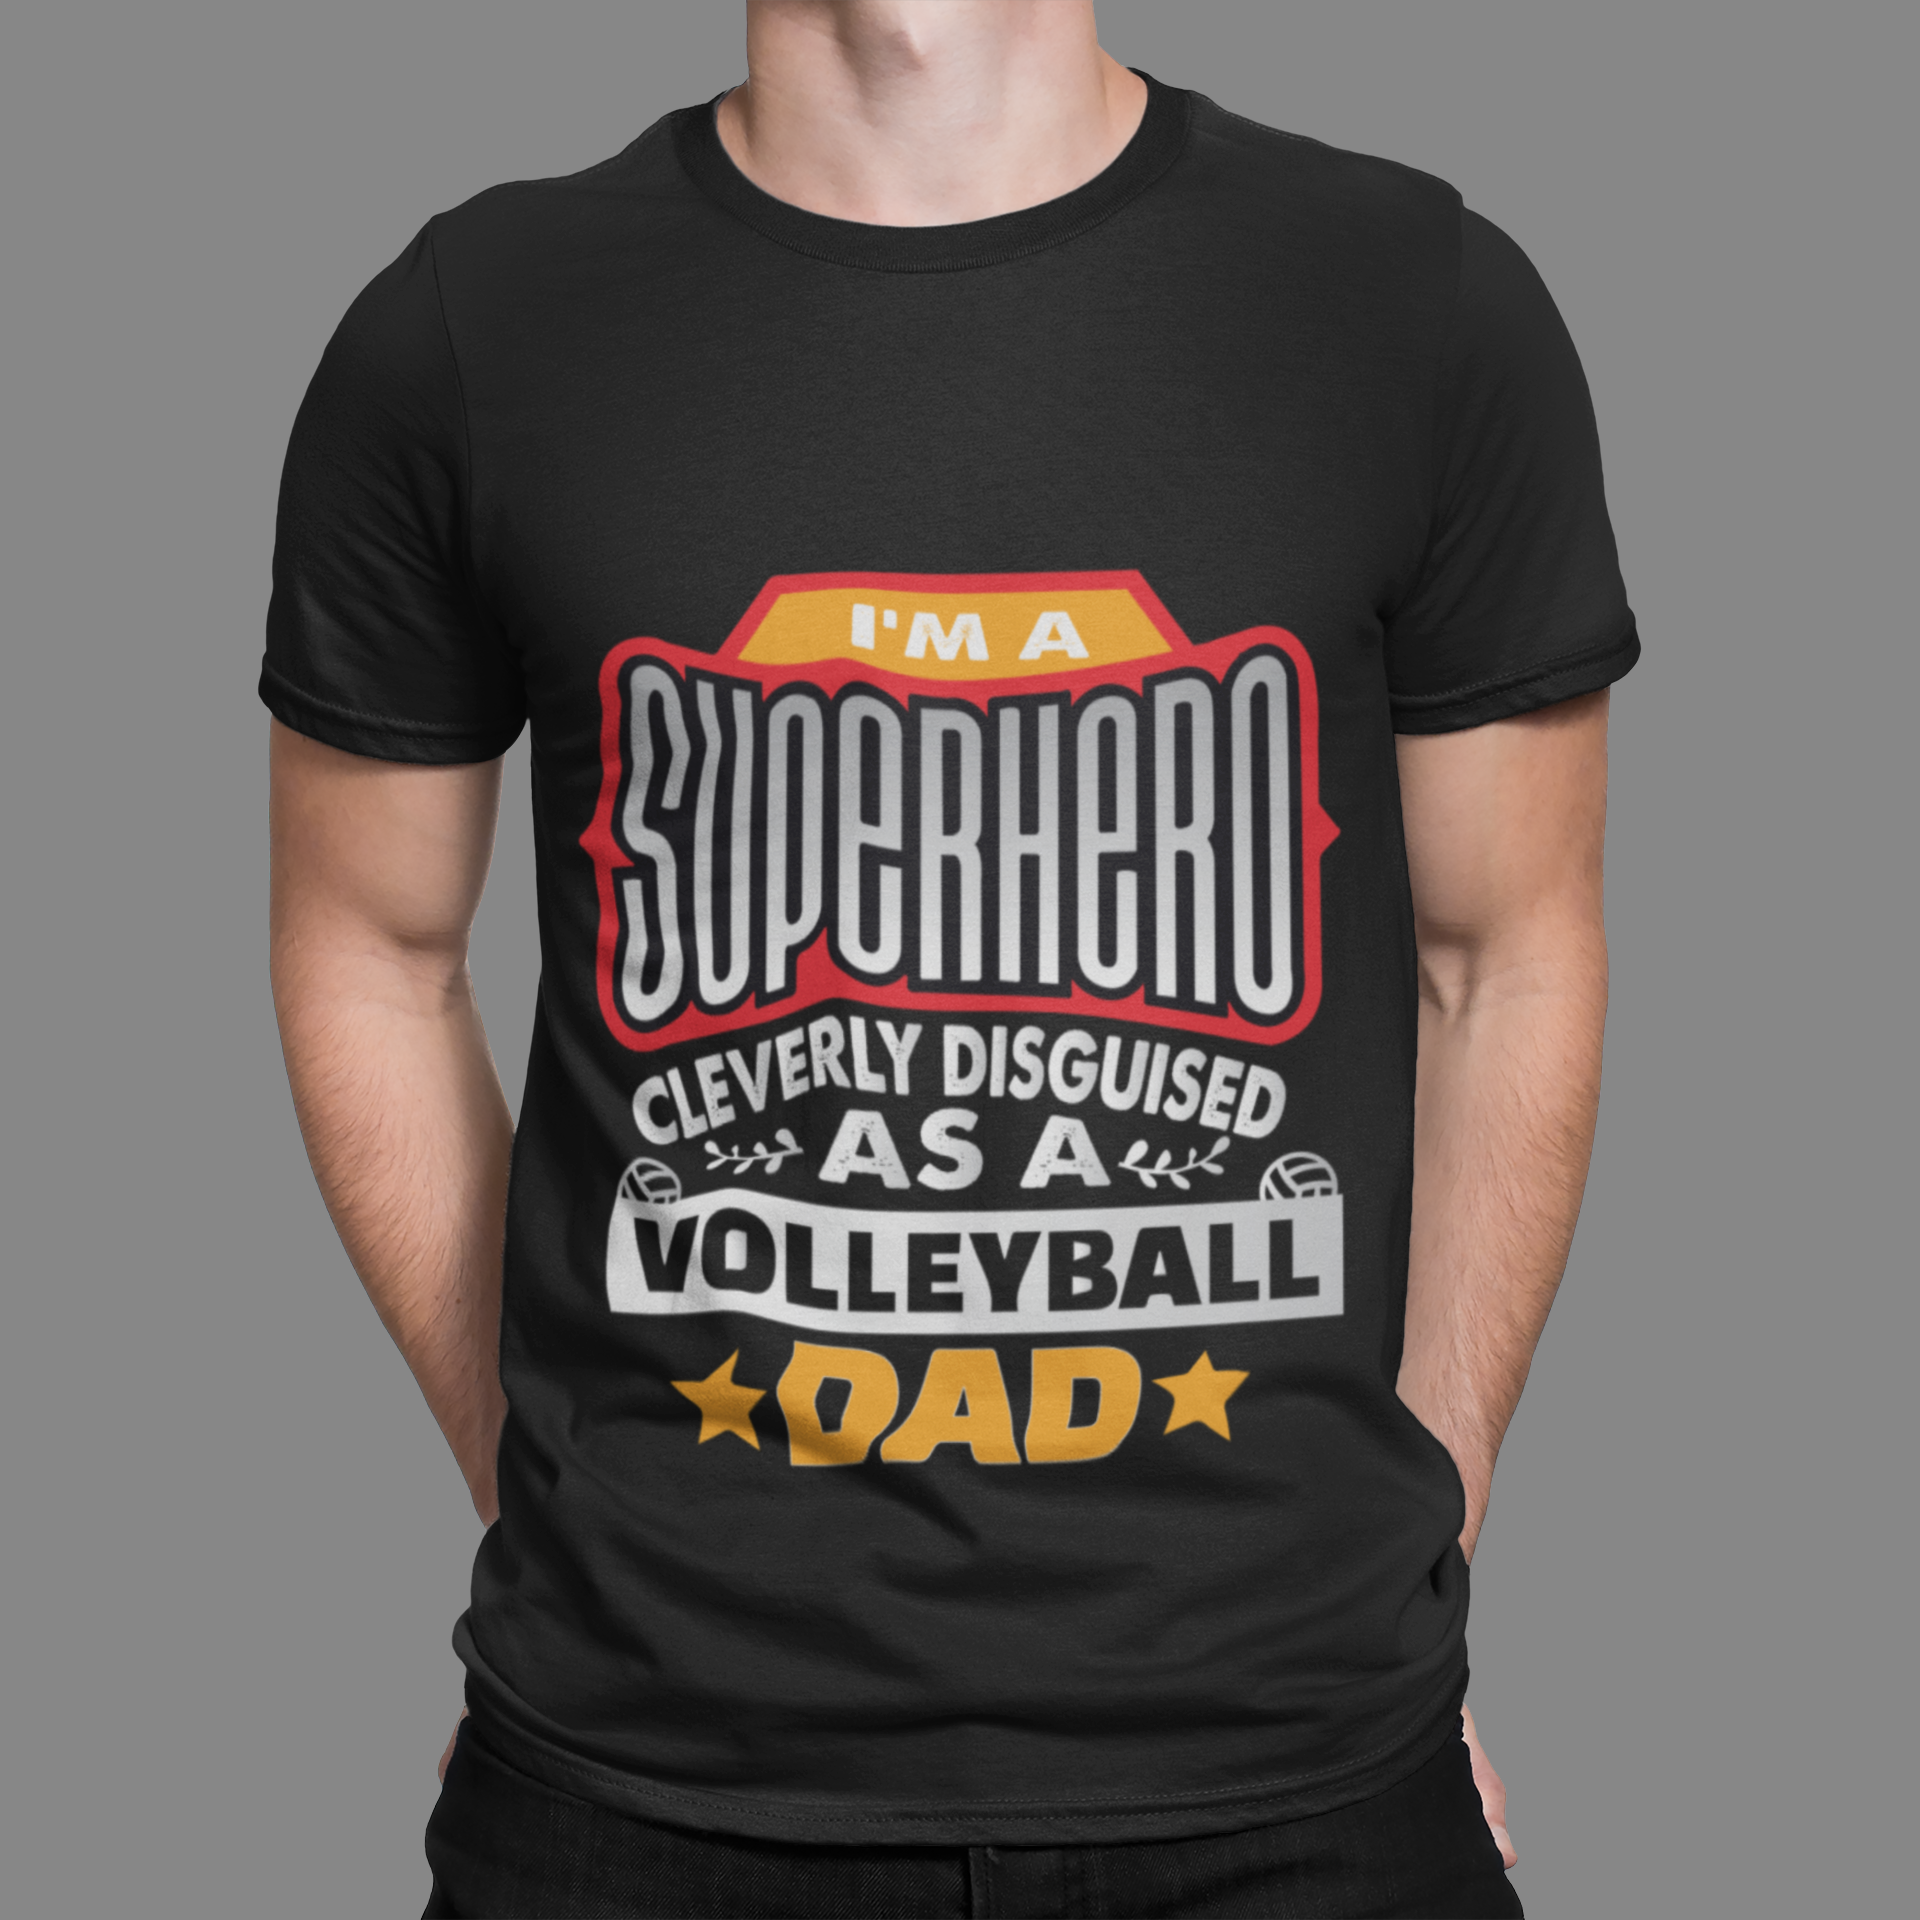 I always wanted to create the ultimate volleyball mom thank you gift which turns out ...happens to be in the form of a volleyball shirt which I think shows appreciation for who moms are.